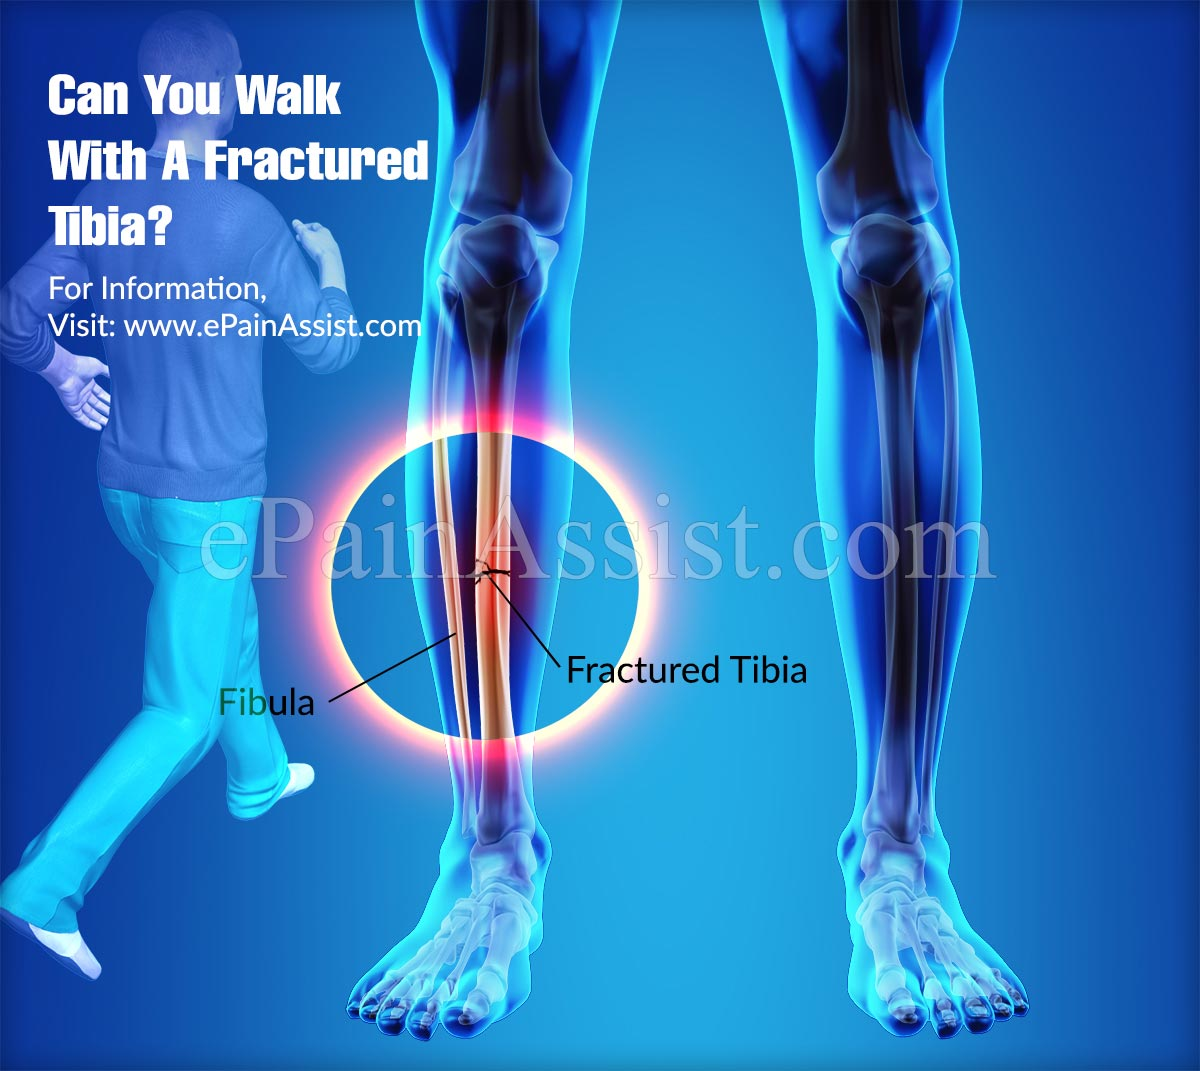 Can You Walk With A Fractured Tibia?